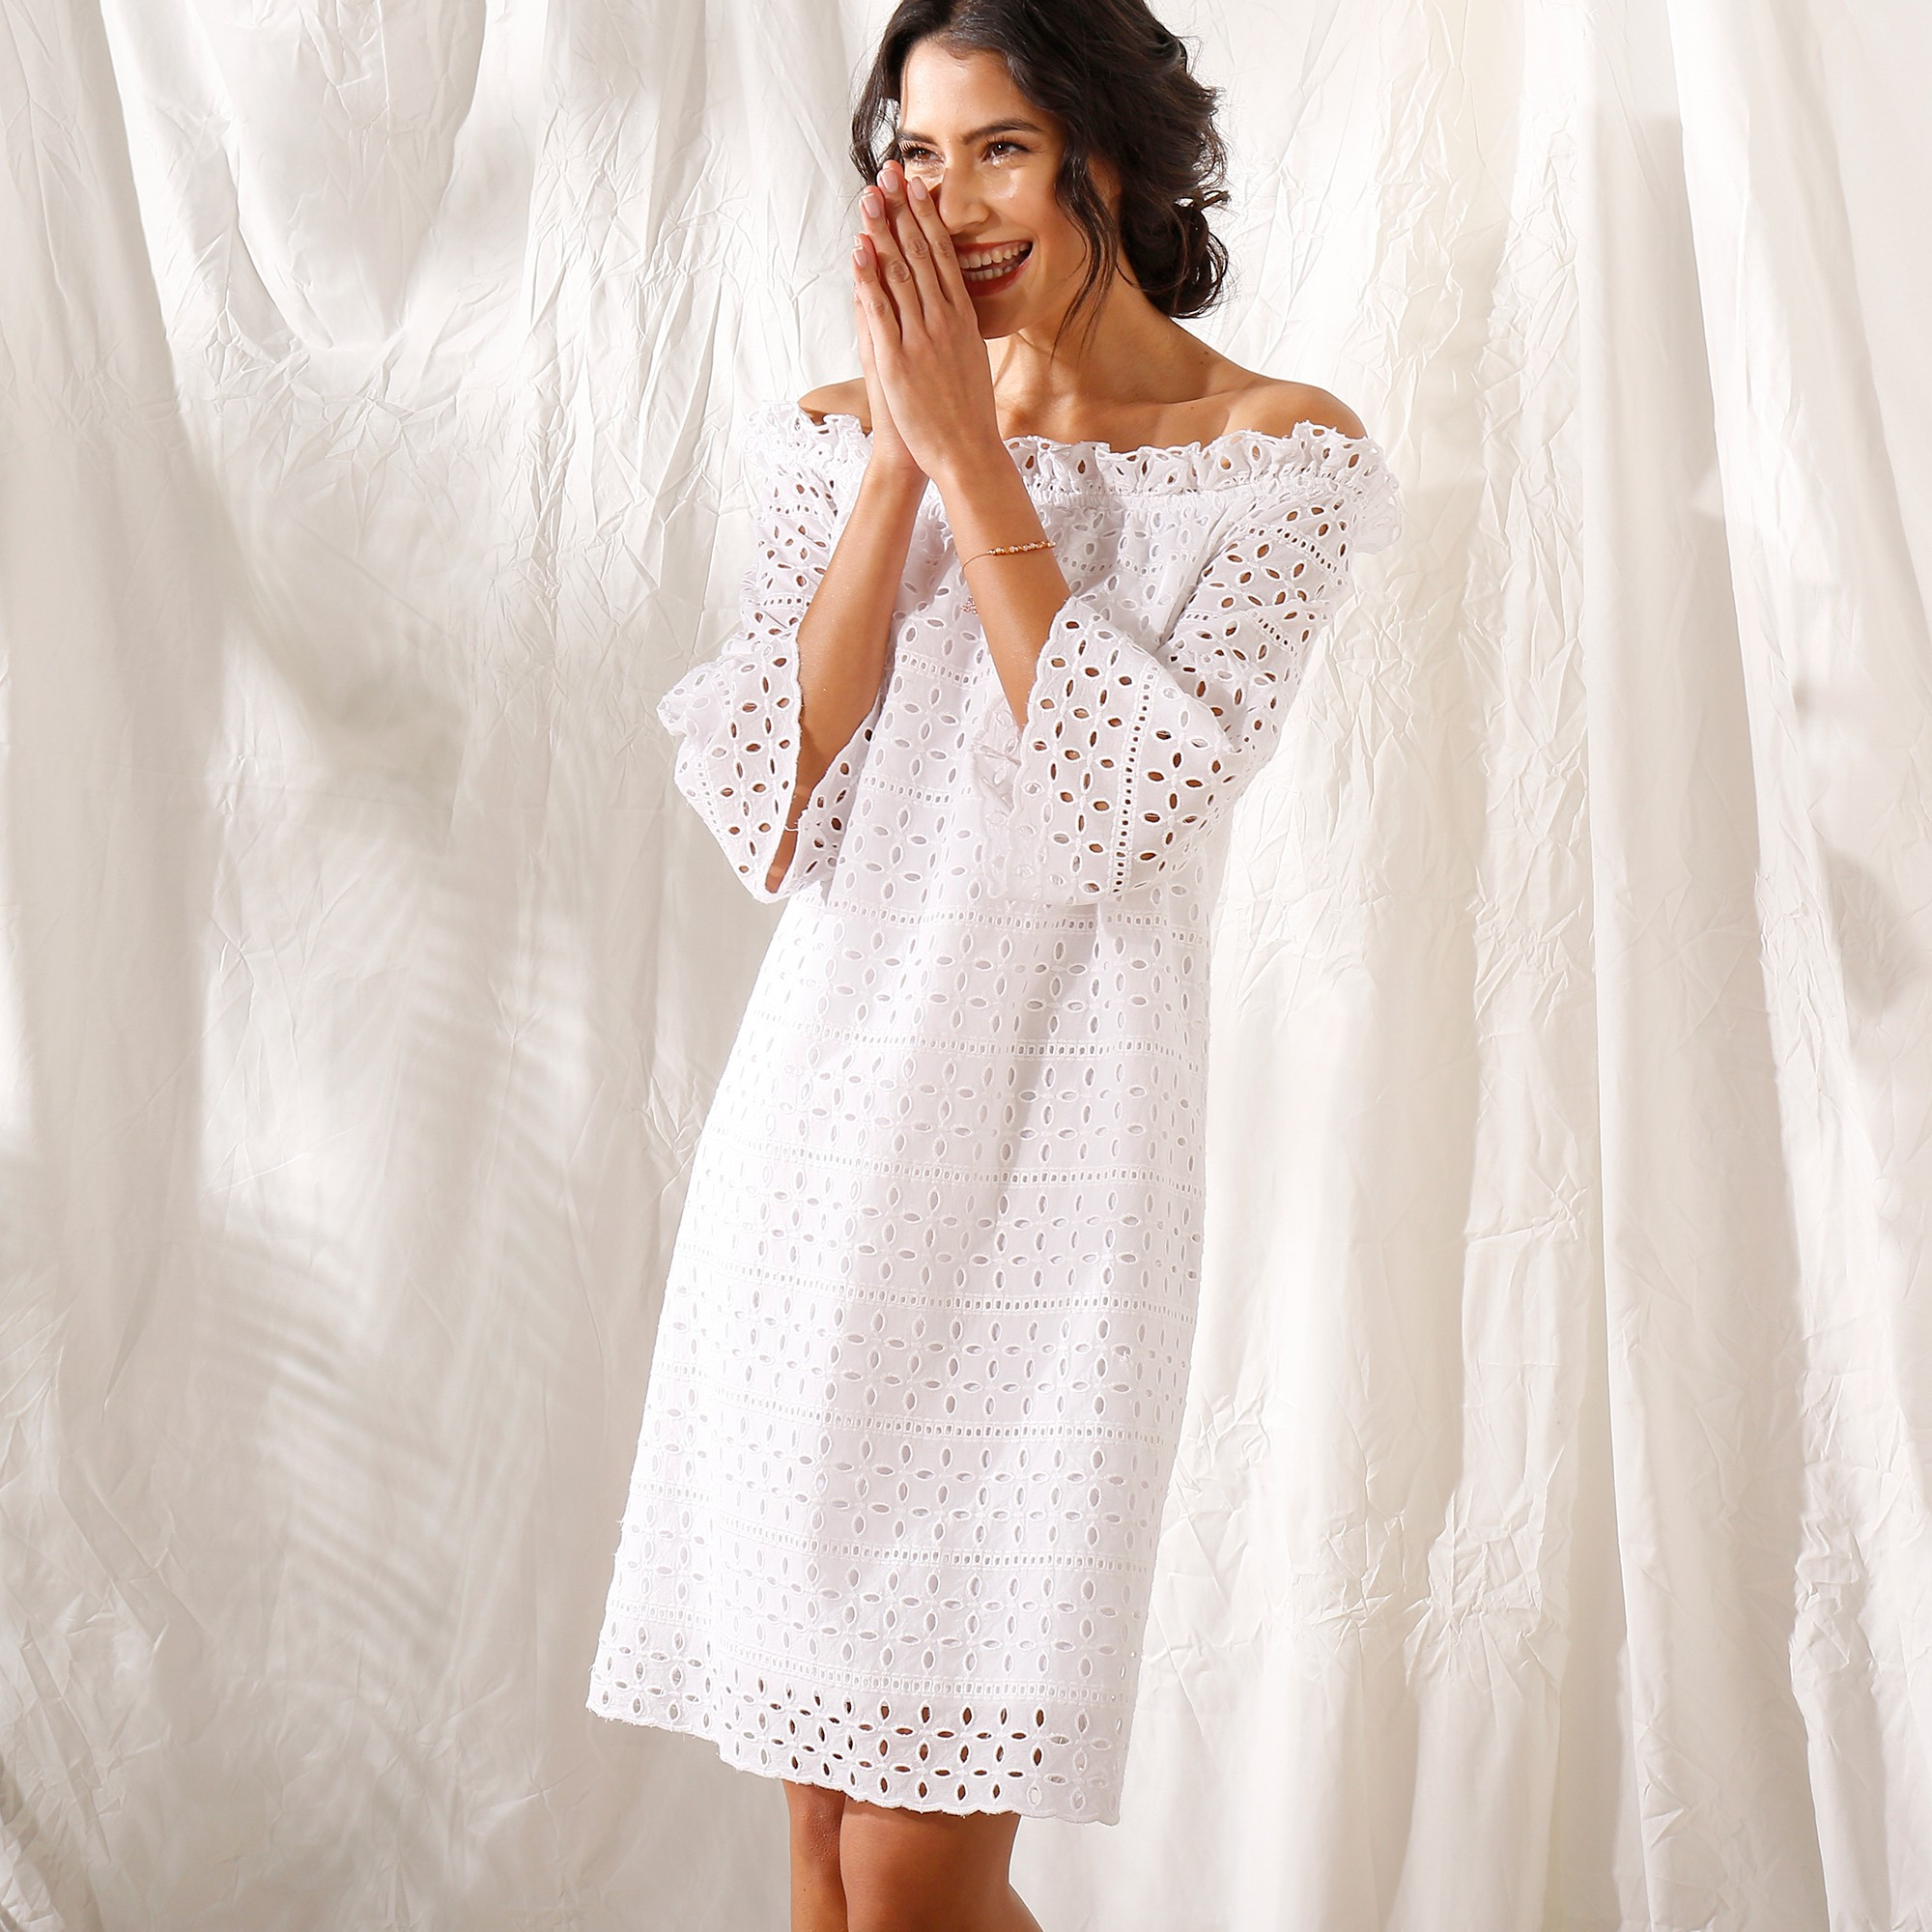 4aea9d7db51 Robe courte broderie anglaise - Blancheporte